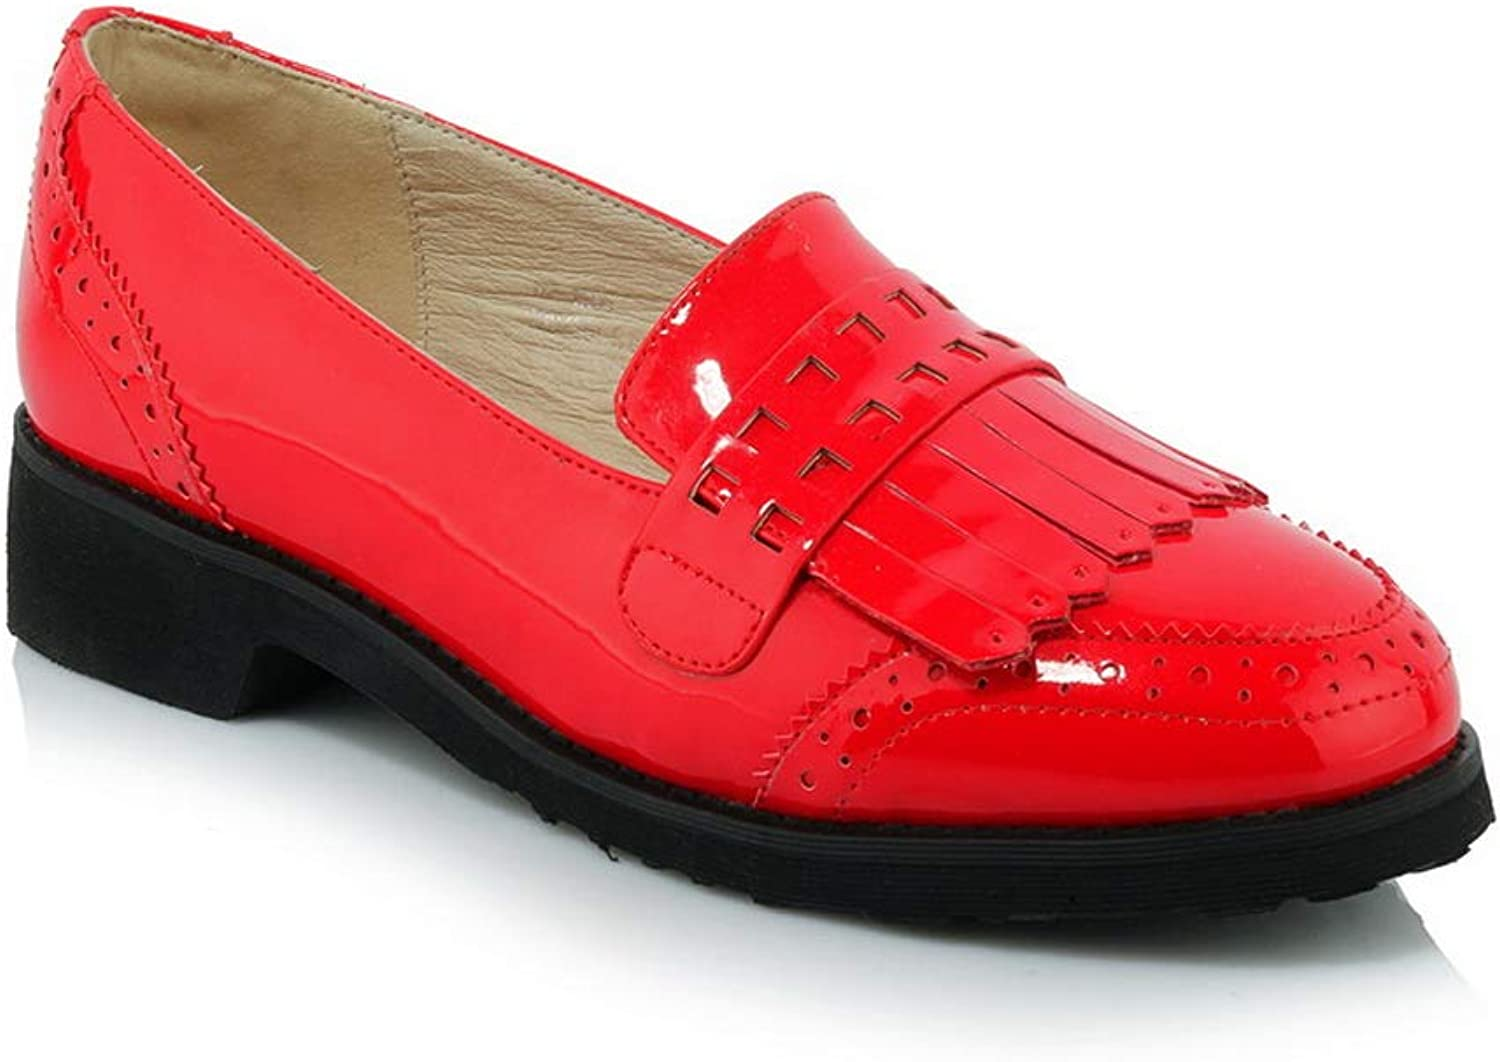 AN Womens Square Heels Tassels Patent-Leather Pumps shoes DGU00773